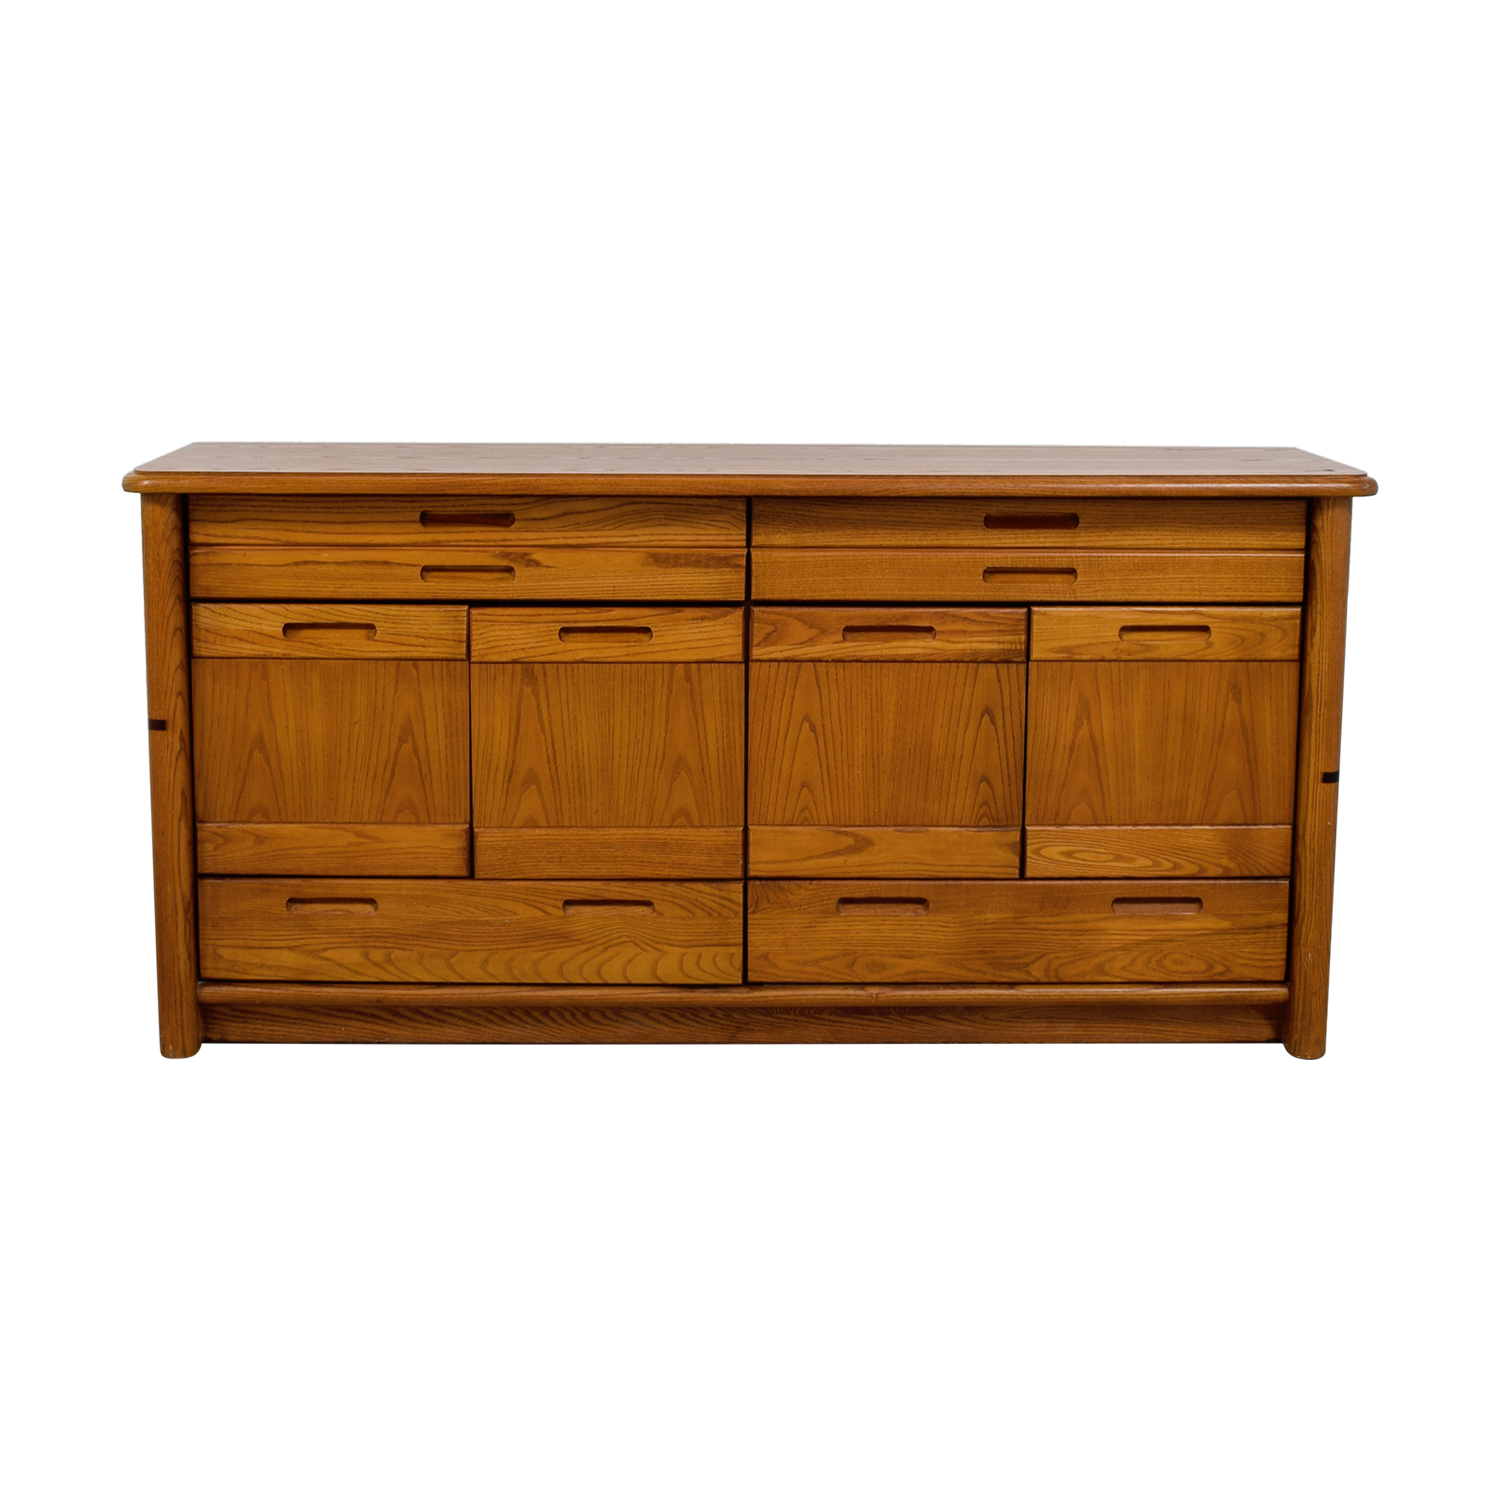 Thomasville Thomasville Wood Buffet Cabinet used